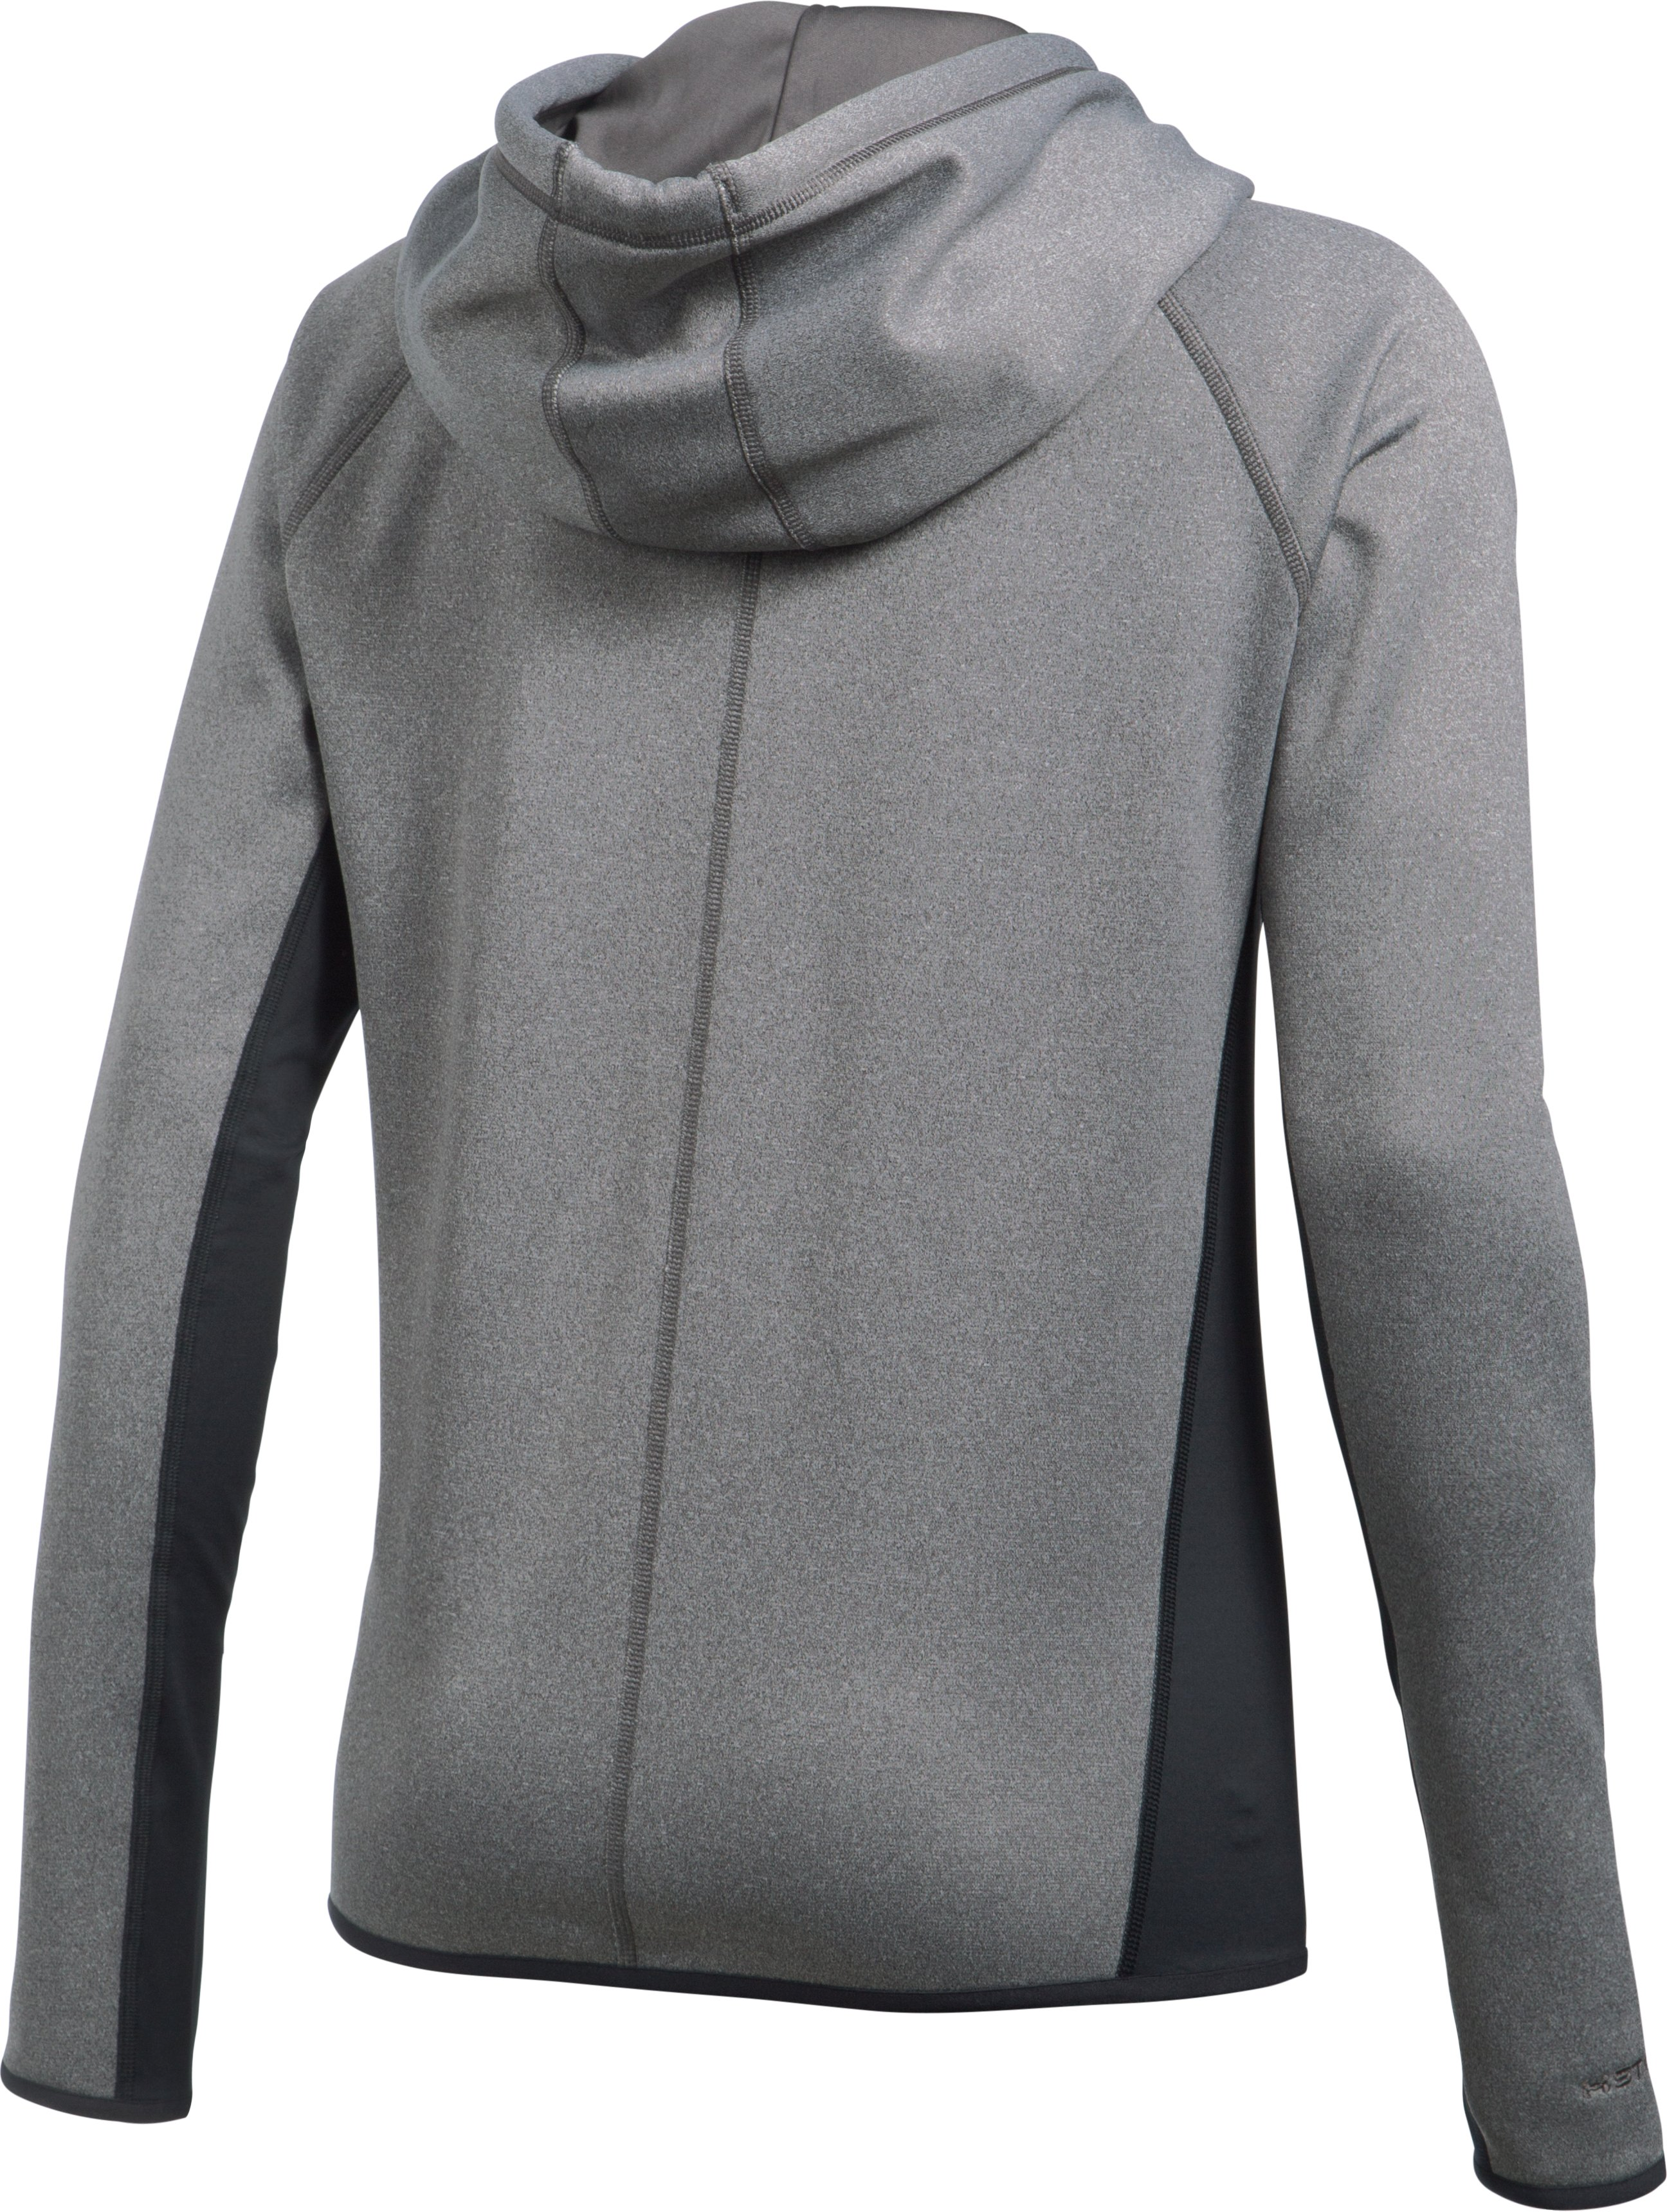 Women's UA Storm Armour® Fleece Full Zip Hoodie, Carbon Heather, undefined